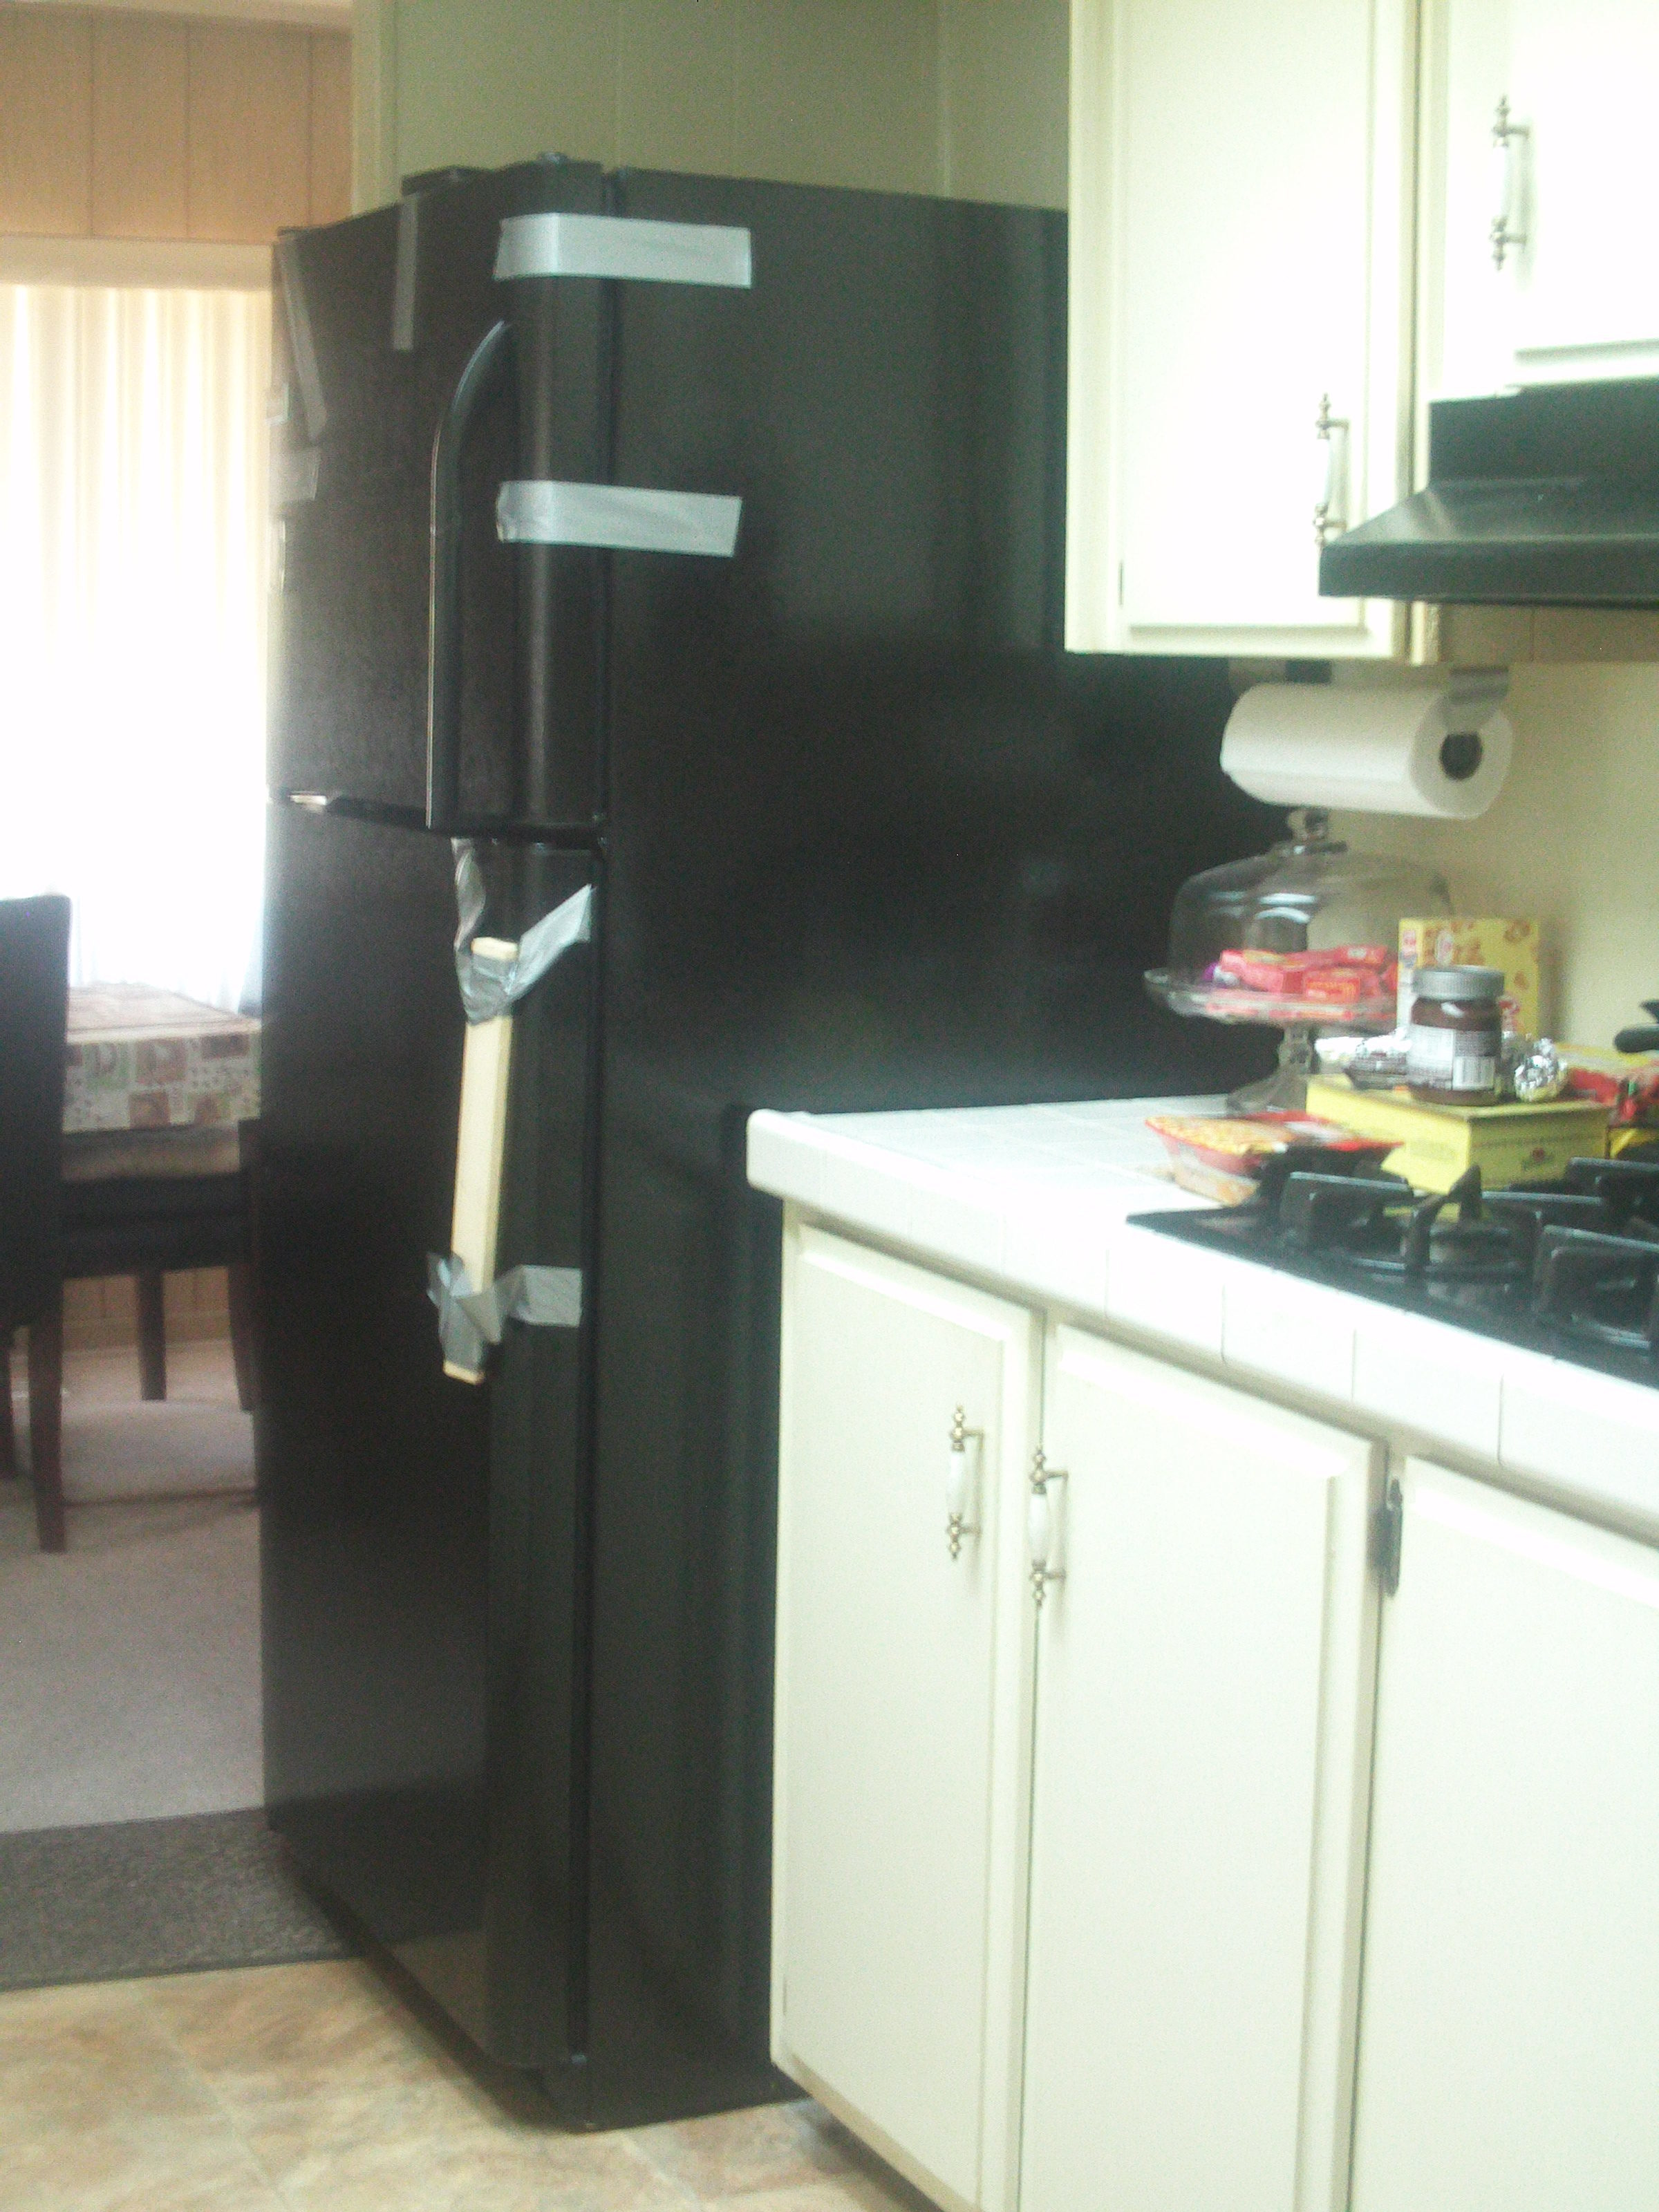 lowes lowes kitchen remodel reviews Finally my Frigidaire problems have been resolved New handle and Hinge have been installed It took some time but Lowes did stand behind the warranty